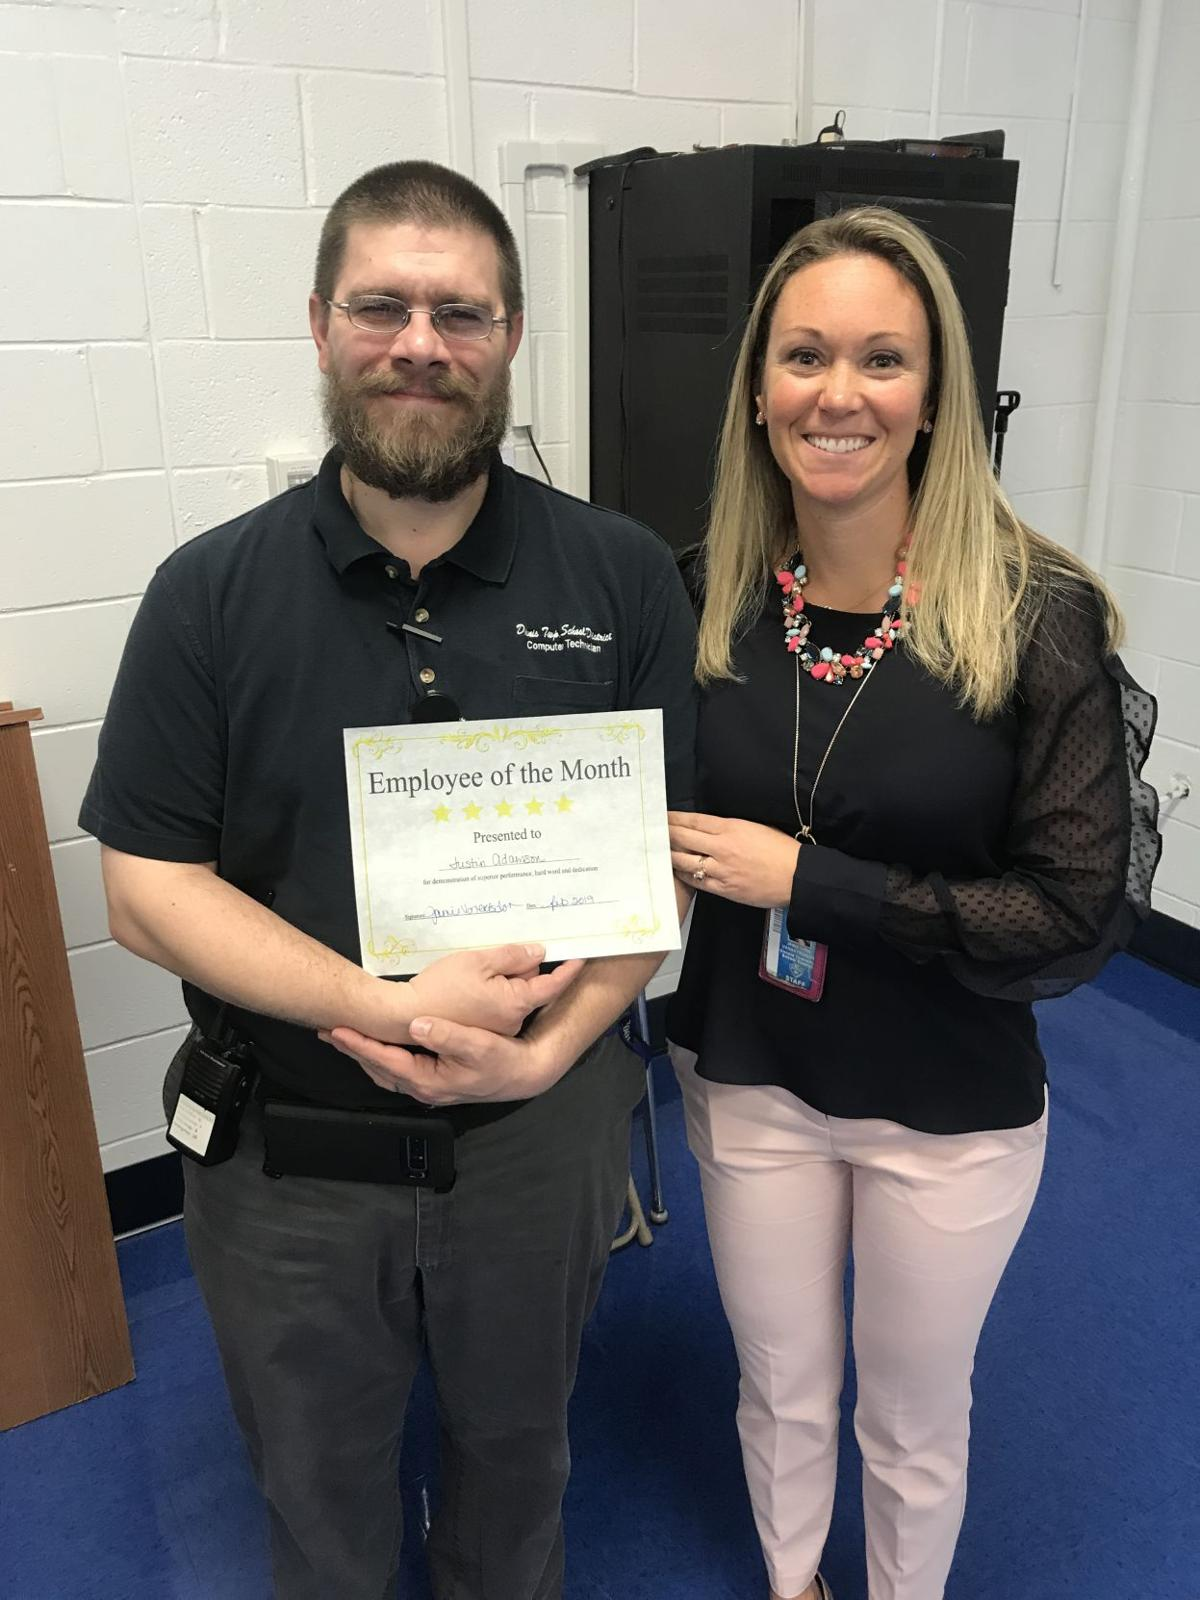 Dennis Township Elementary, Middle School Recognizes Honest Students